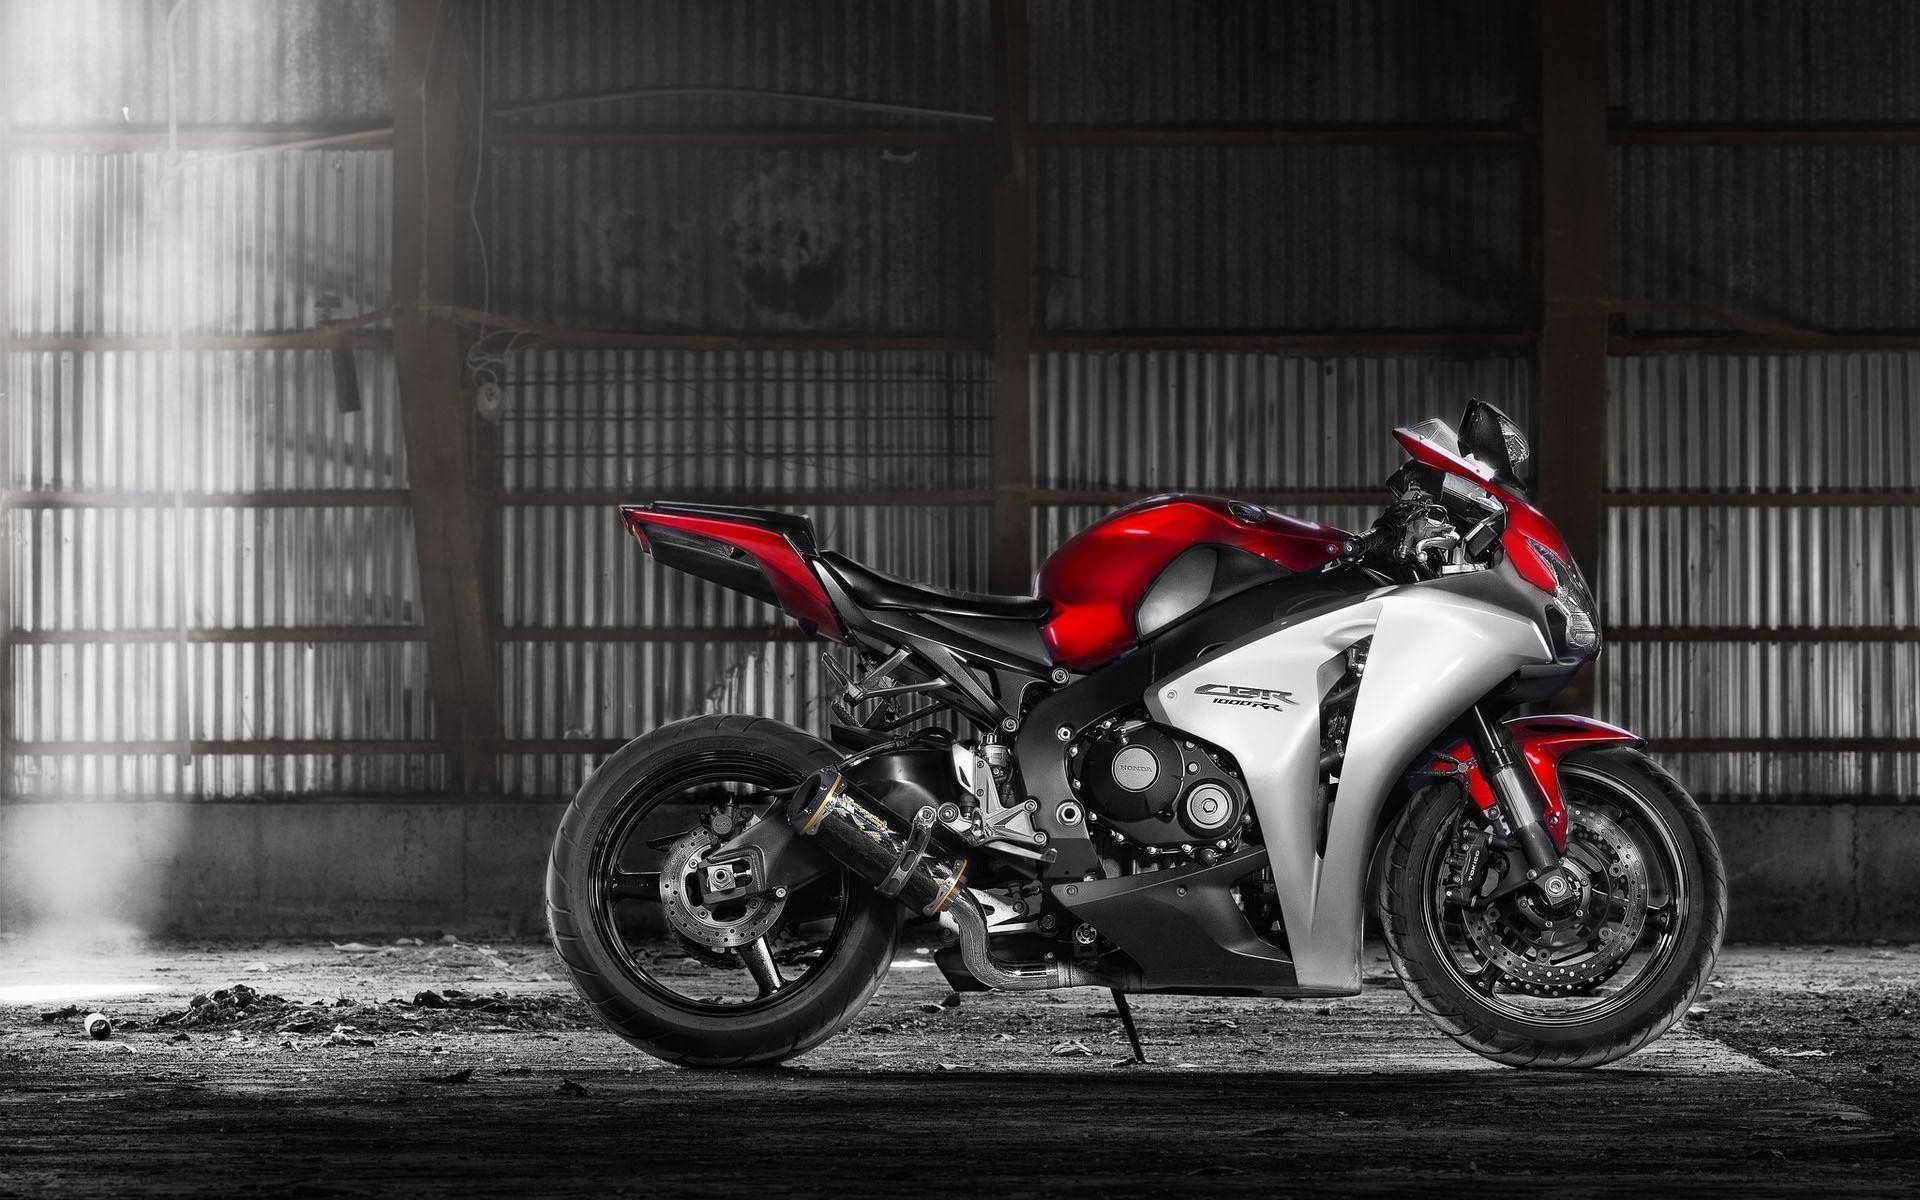 74 Cbr1000Rr Wallpapers on WallpaperPlay 1920x1200